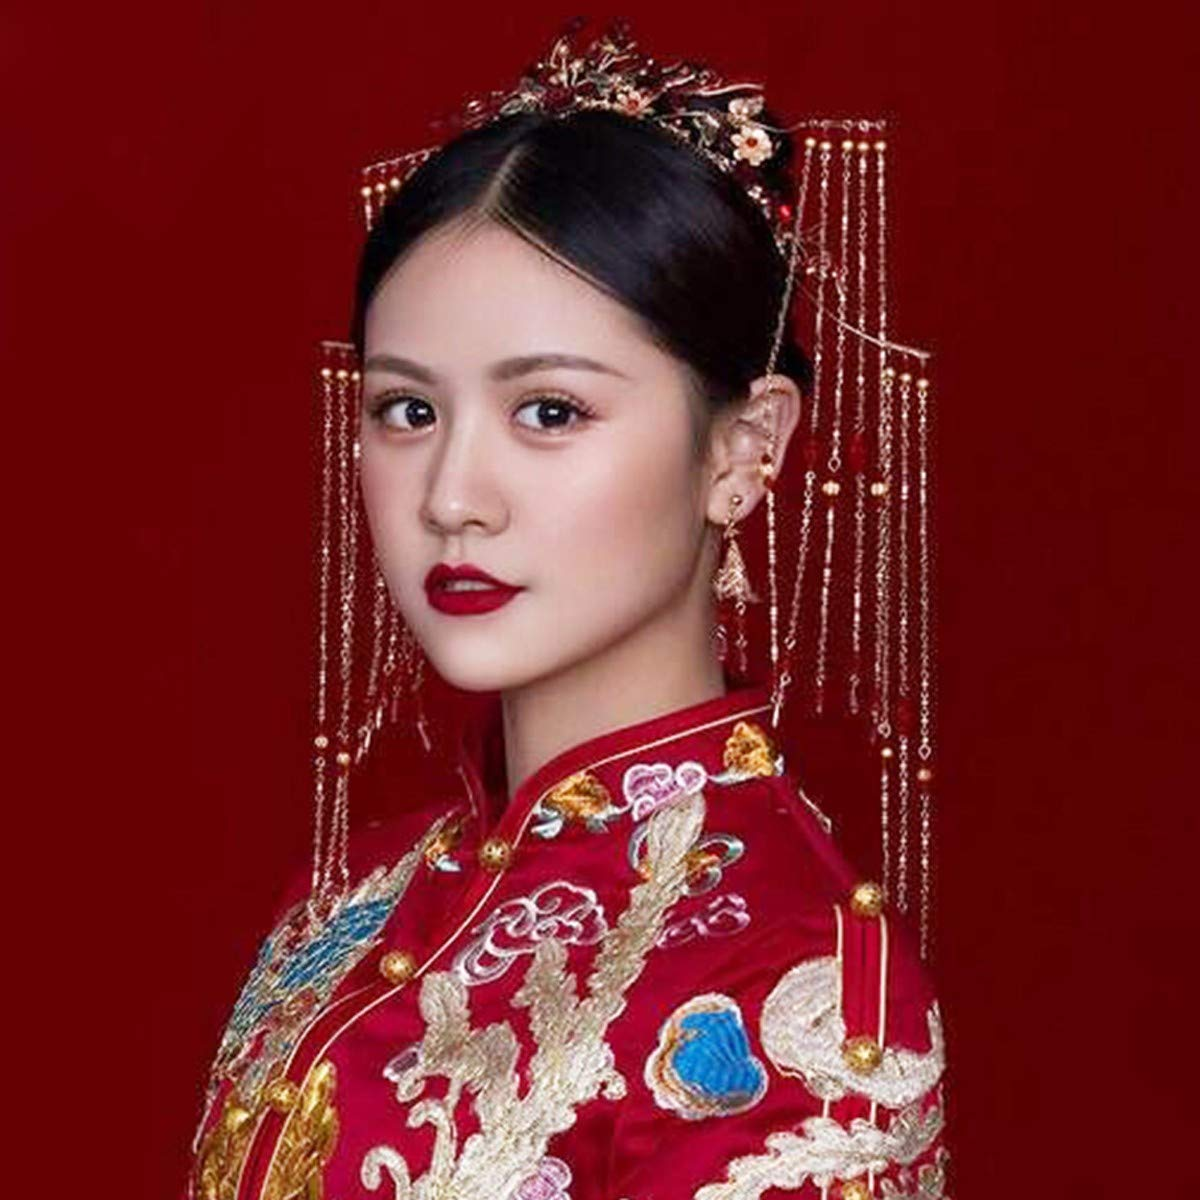 Girls Crown, Beautiful headdress/Chinese Brides Headgear Costume Wedding Antique Chinese Clothes Fringes Xiu Wo Dress Hairpin. by Zehaer (Image #2)